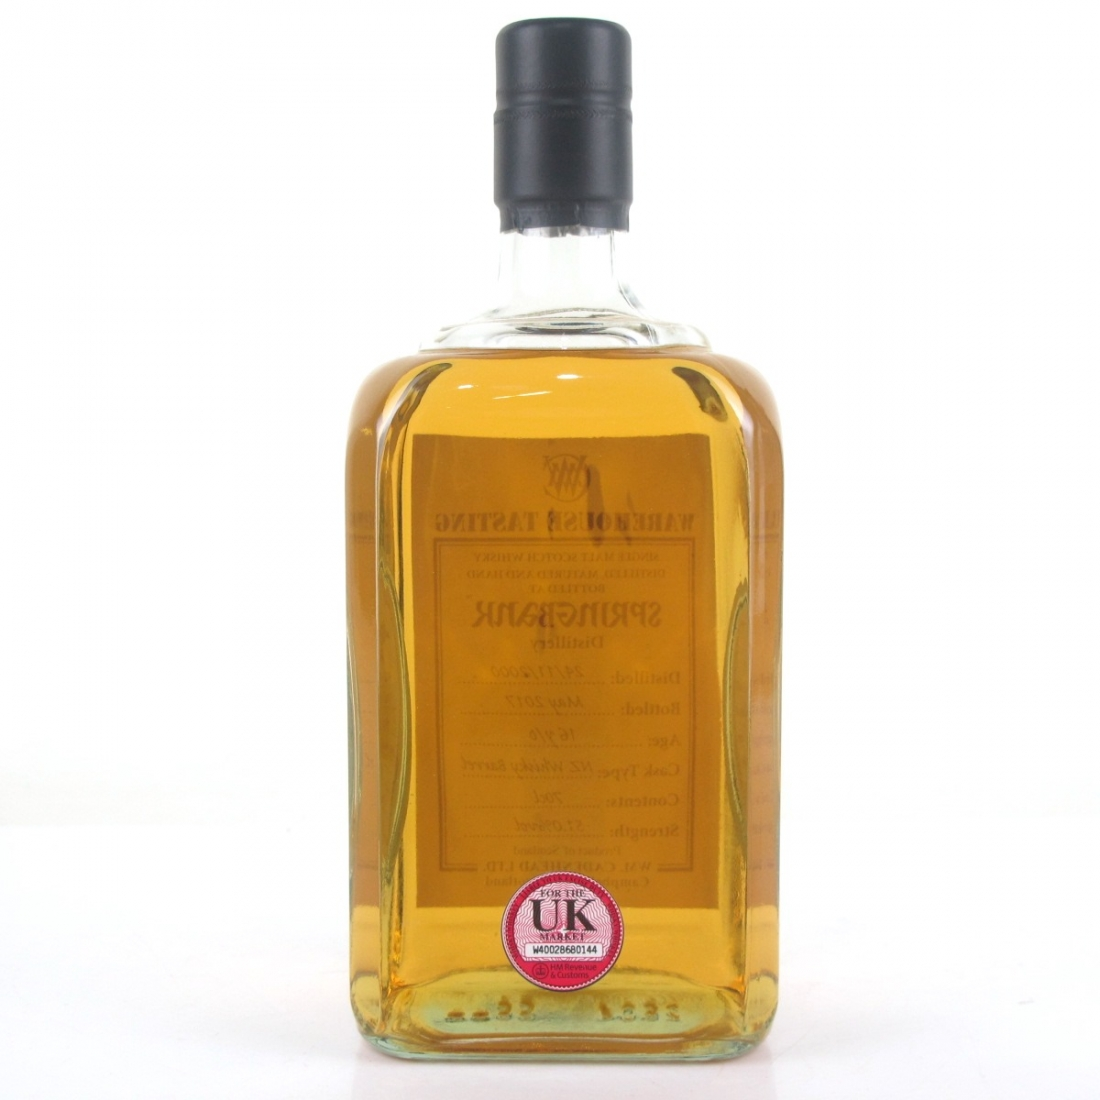 Springbank 2000 New Zealand Whisky Cask 16 Year Old / Warehouse Tasting